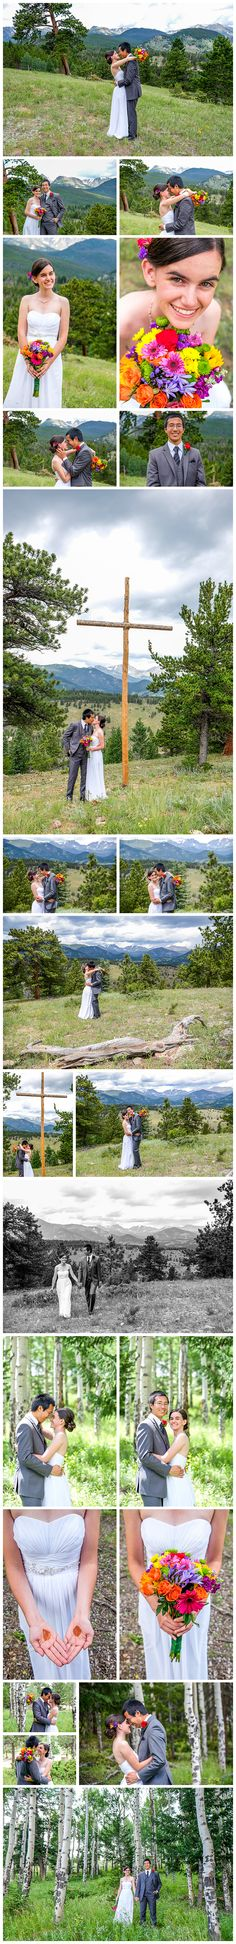 Colorado wedding photography - wedding photography - Rocky Mountain Bride - Visual Poetry by Meghan - YMCA of the Rockies wedding - Rocky Mountain National Park